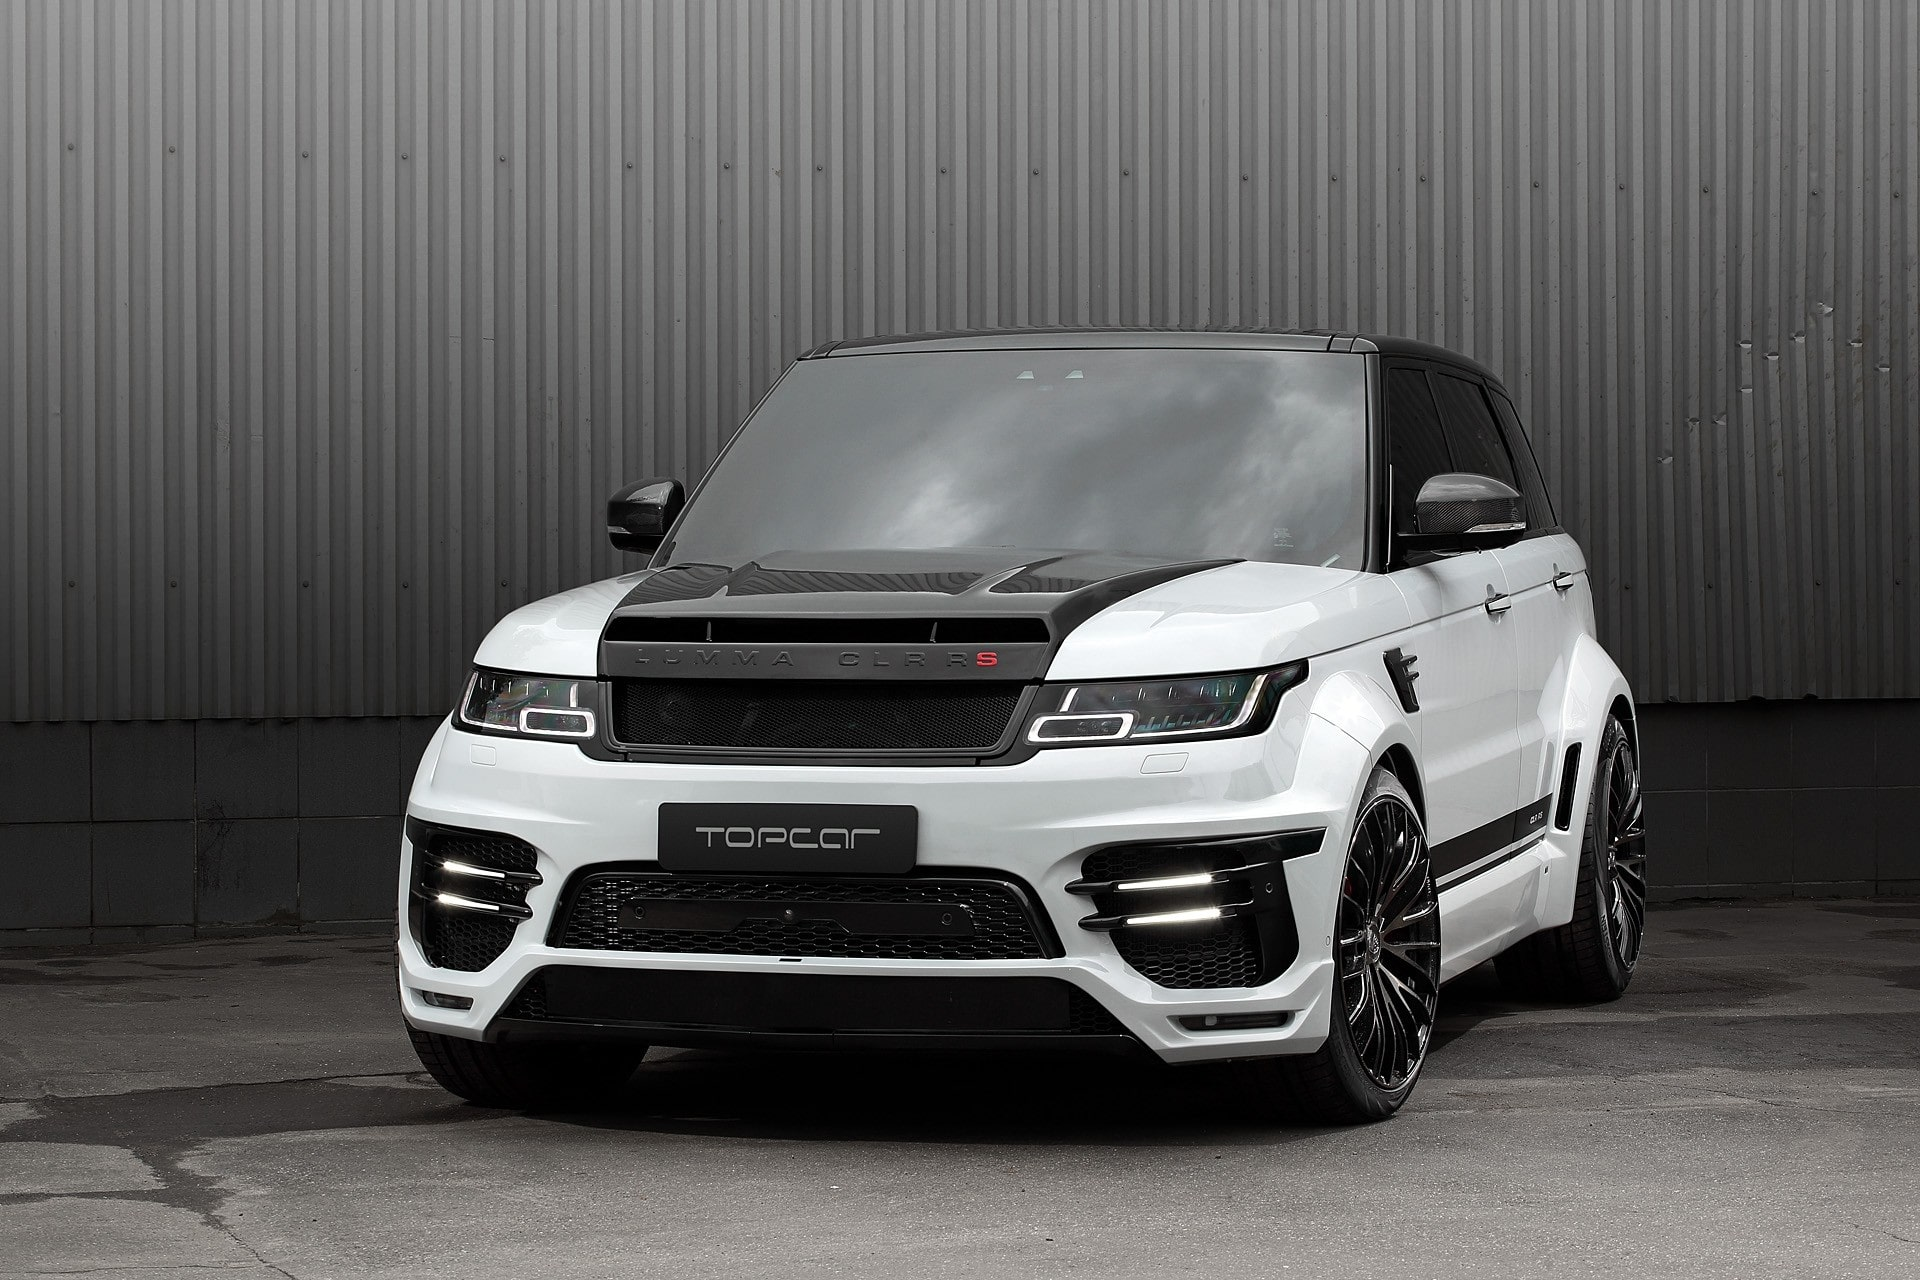 2020 Range Rover Sport - Lumma Body Kit